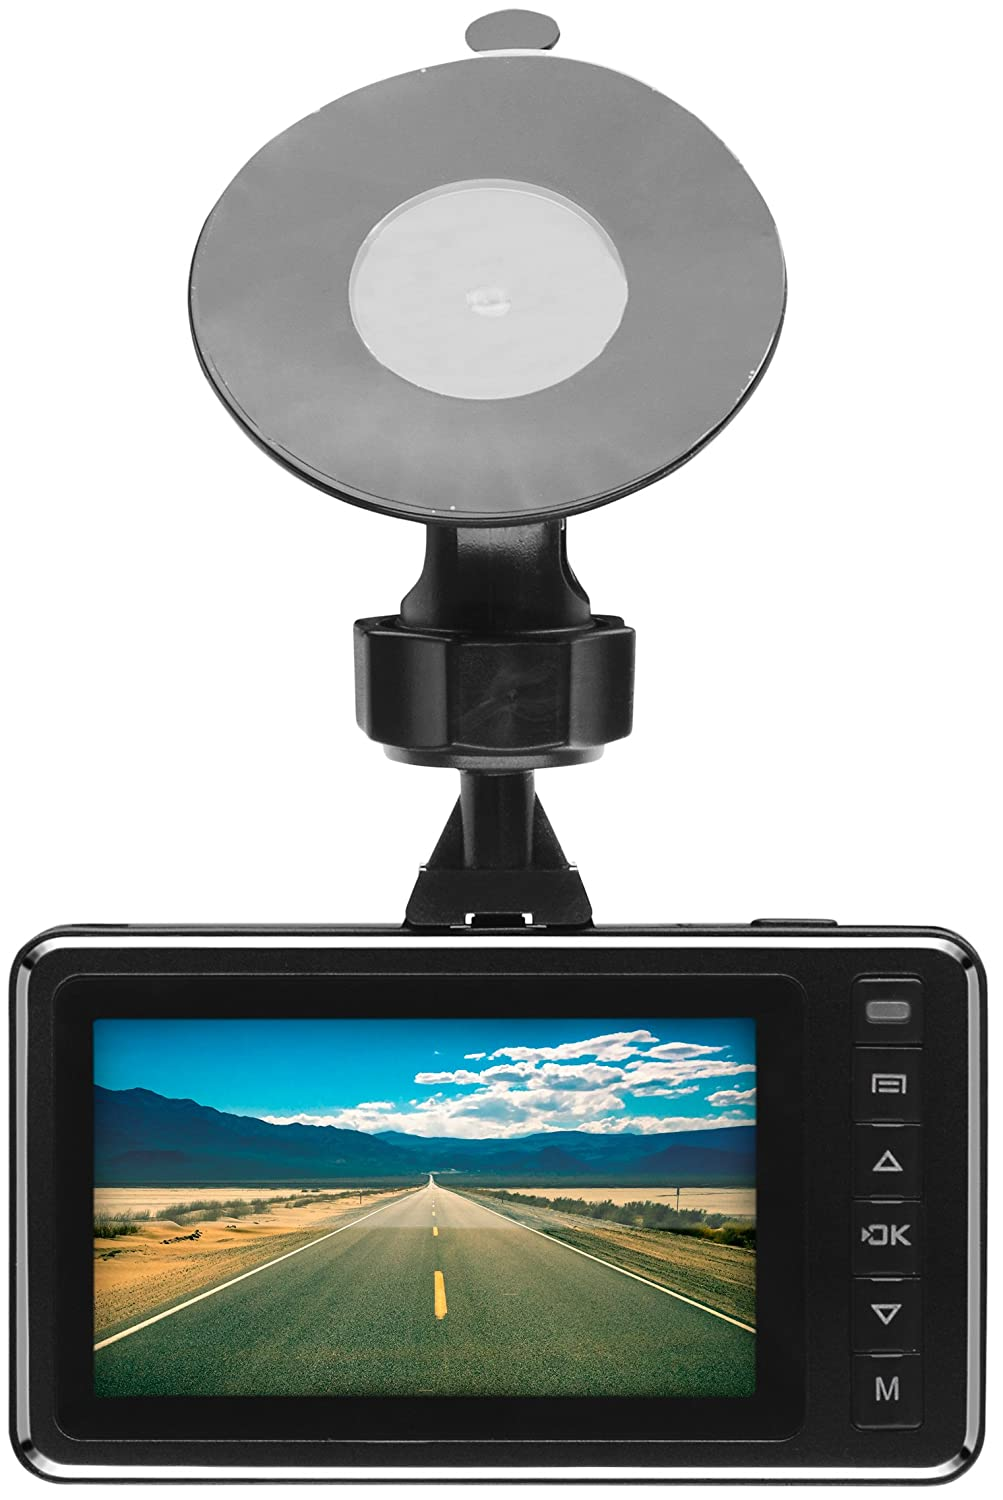 """BOSS Audio BCAM40 Car Dash Cam DVR System – 2.7"""" High Definition LCD Screen, 1080P Recording, Power Adapter And SYNC Cable, Motion Detection, Auto Loop Recording, 110° Wide Angle"""